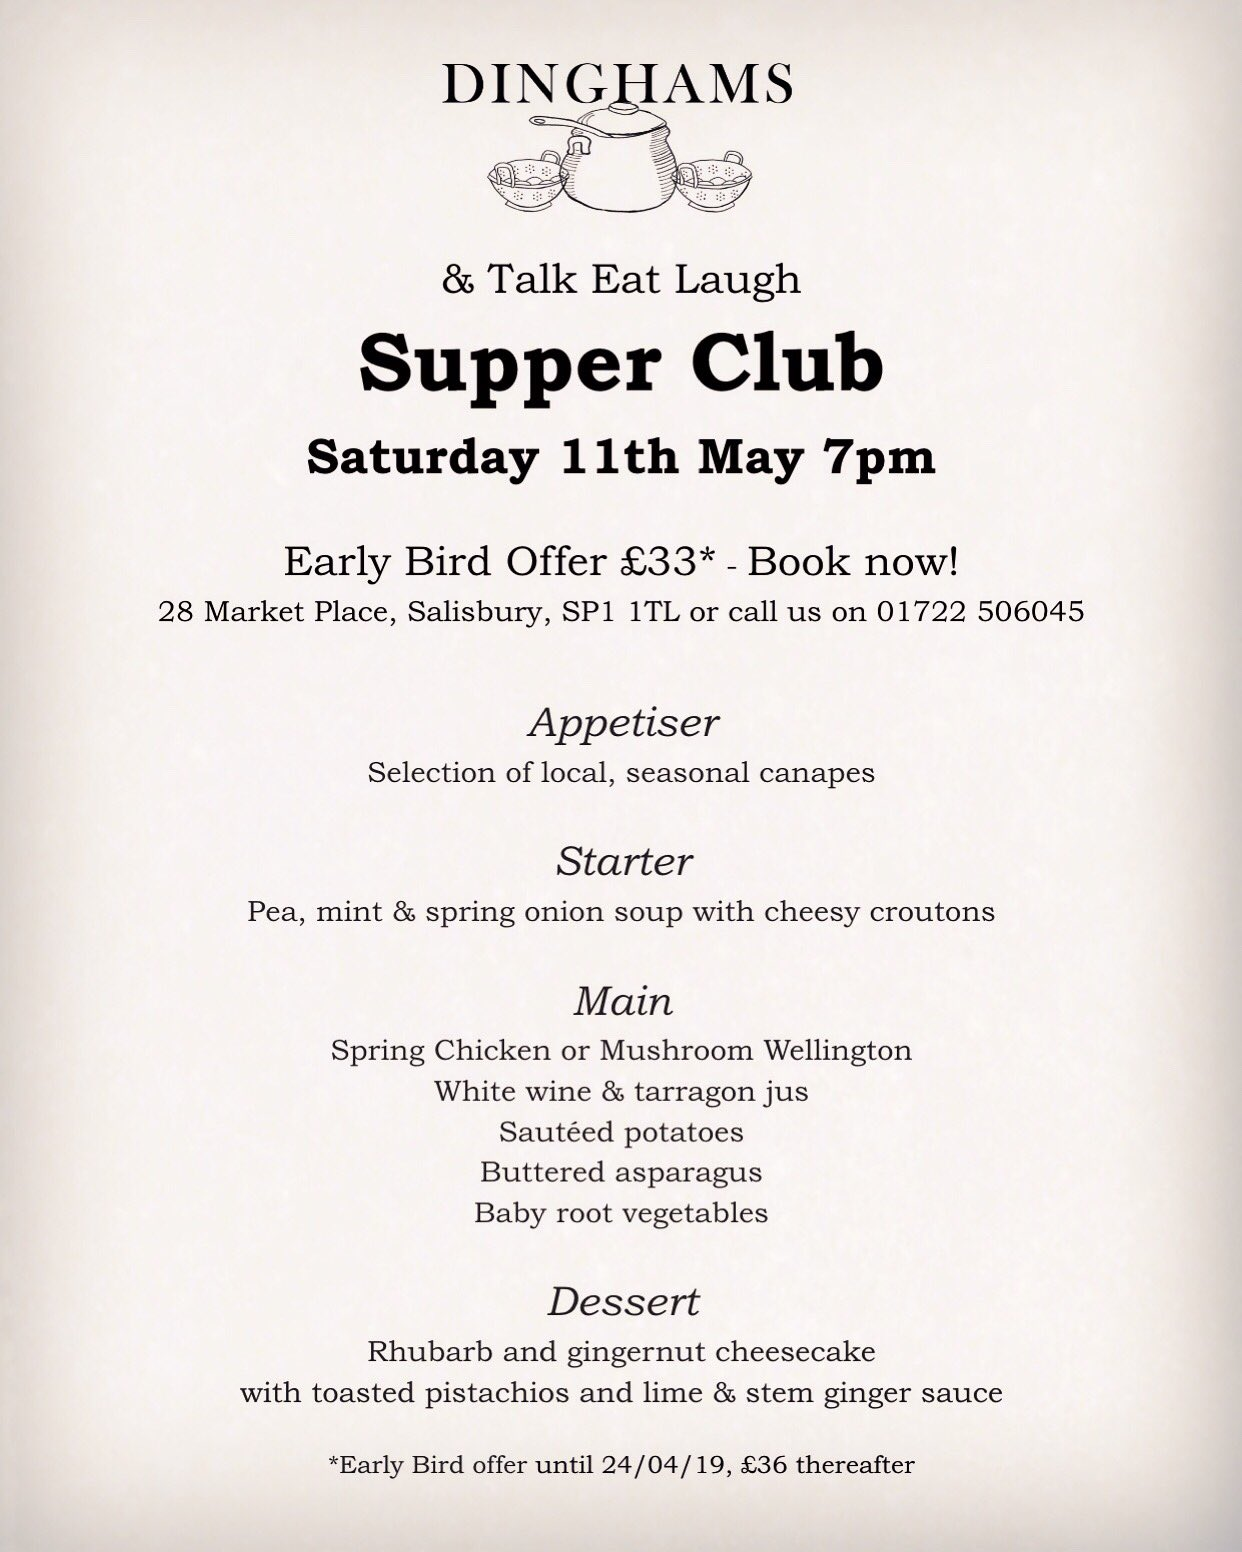 Supper Club with Dinghams, 11th May